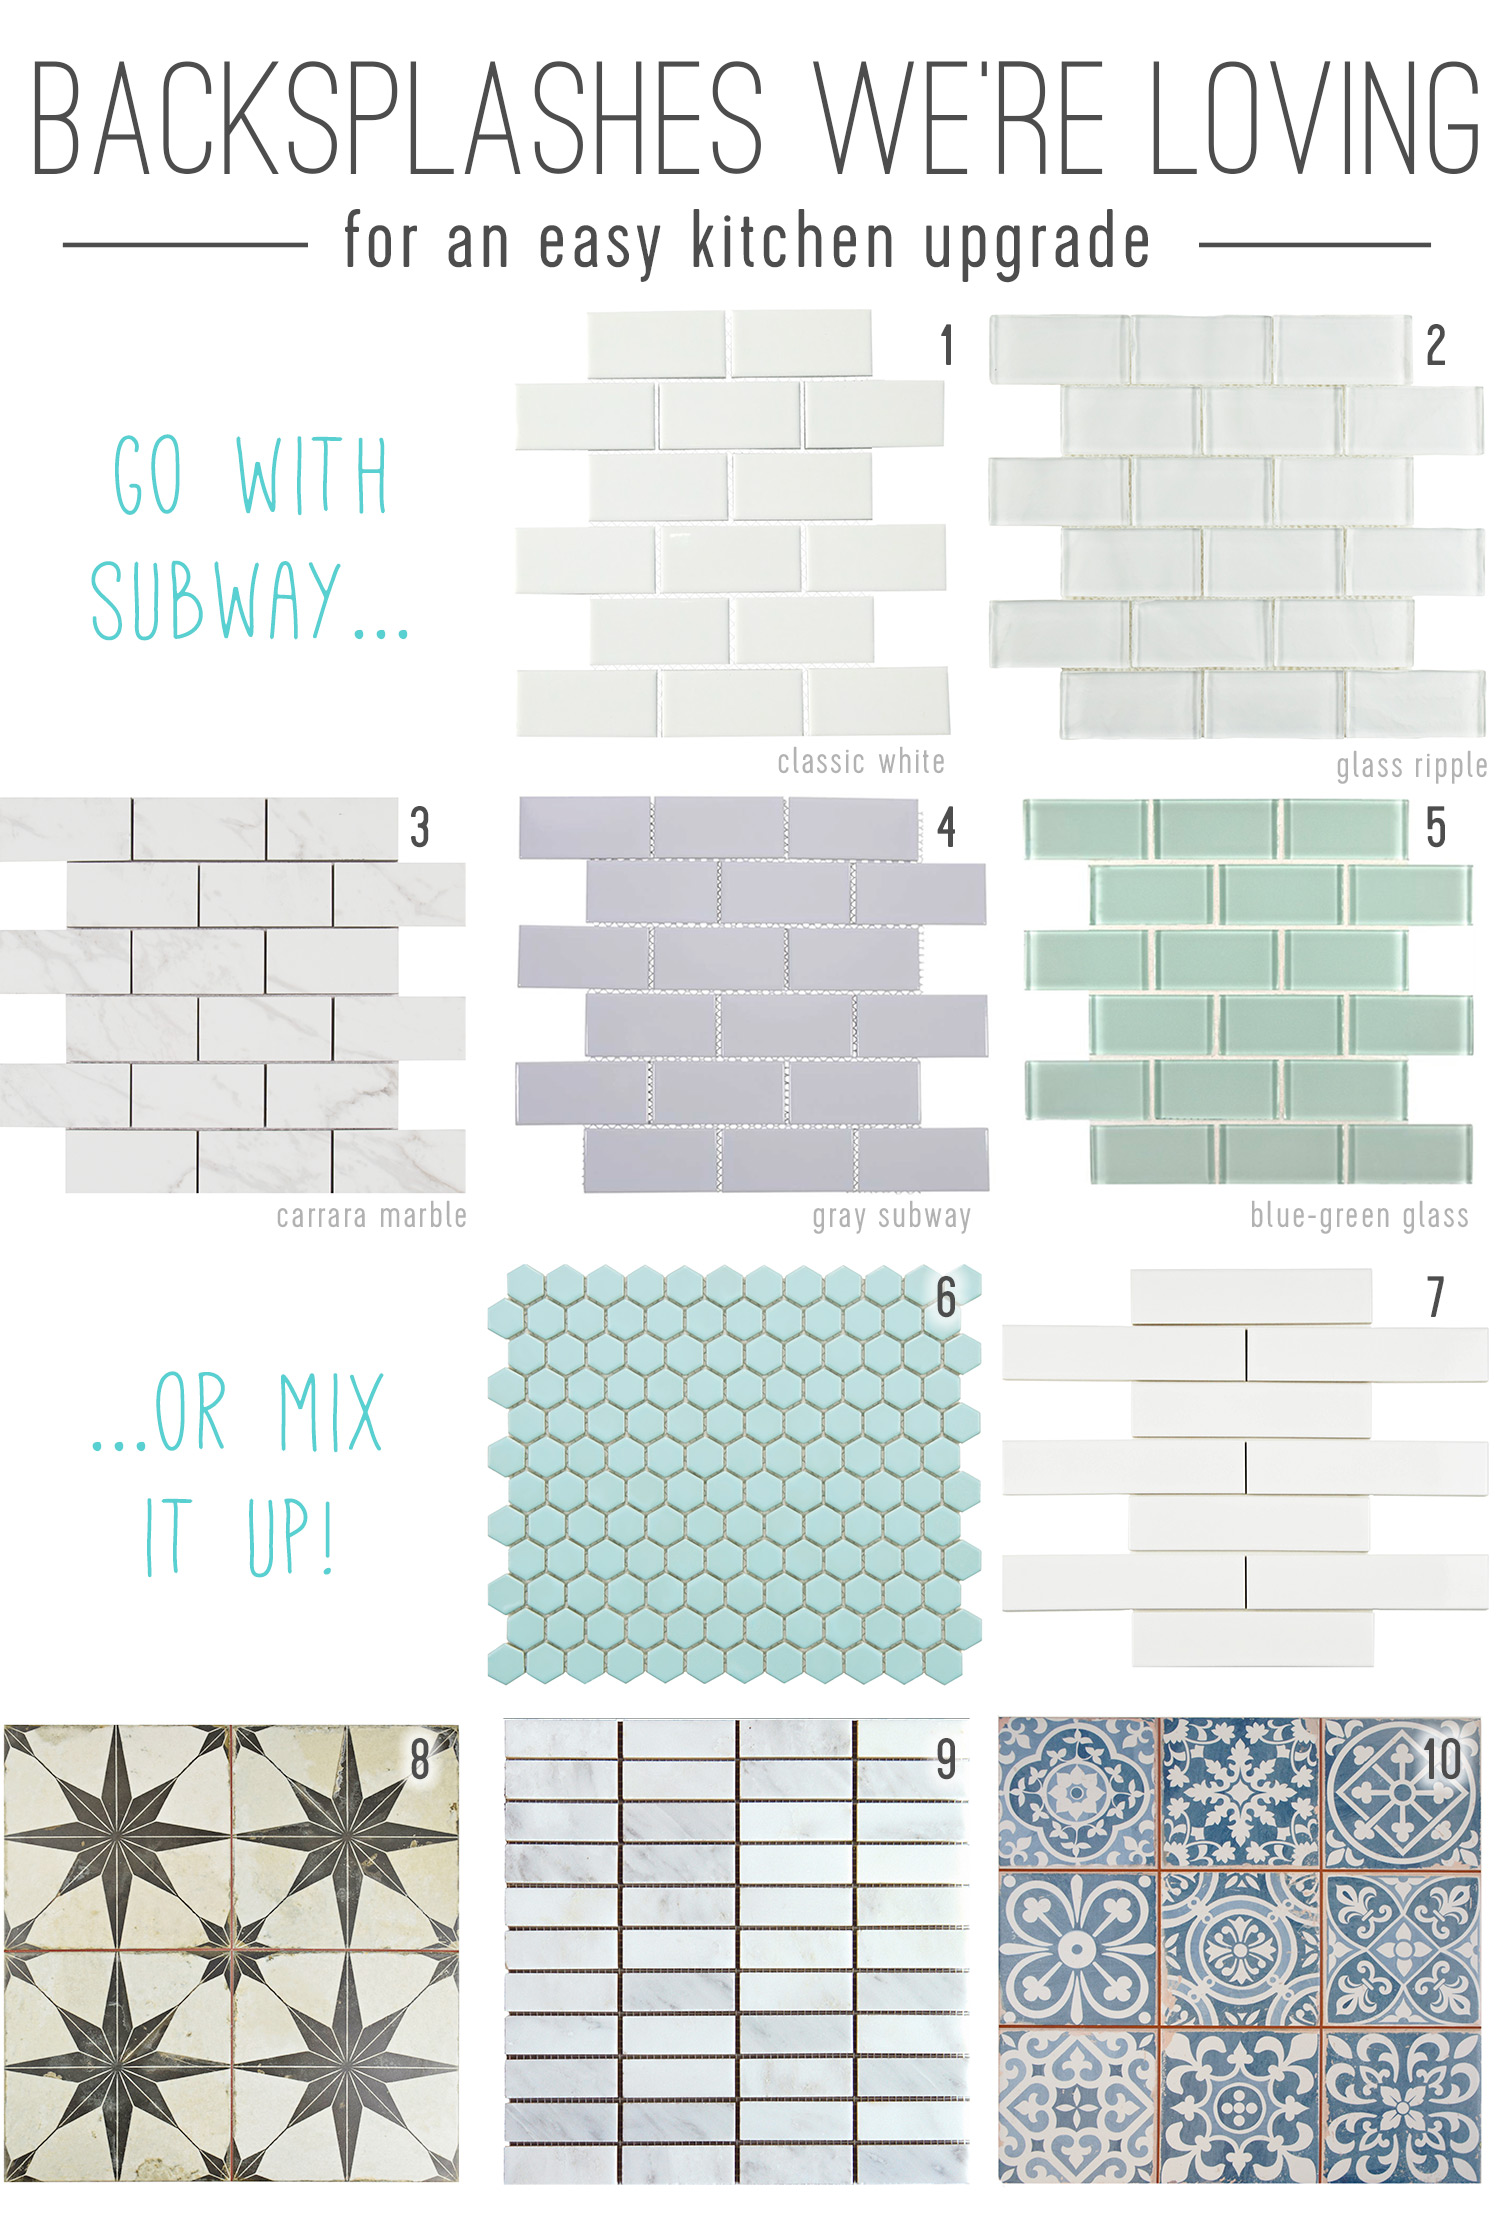 Backsplash-tile-picks-that-are-budget-friendly-and-perfect-for-a-kitchen-update-wallpaper-wp4003225